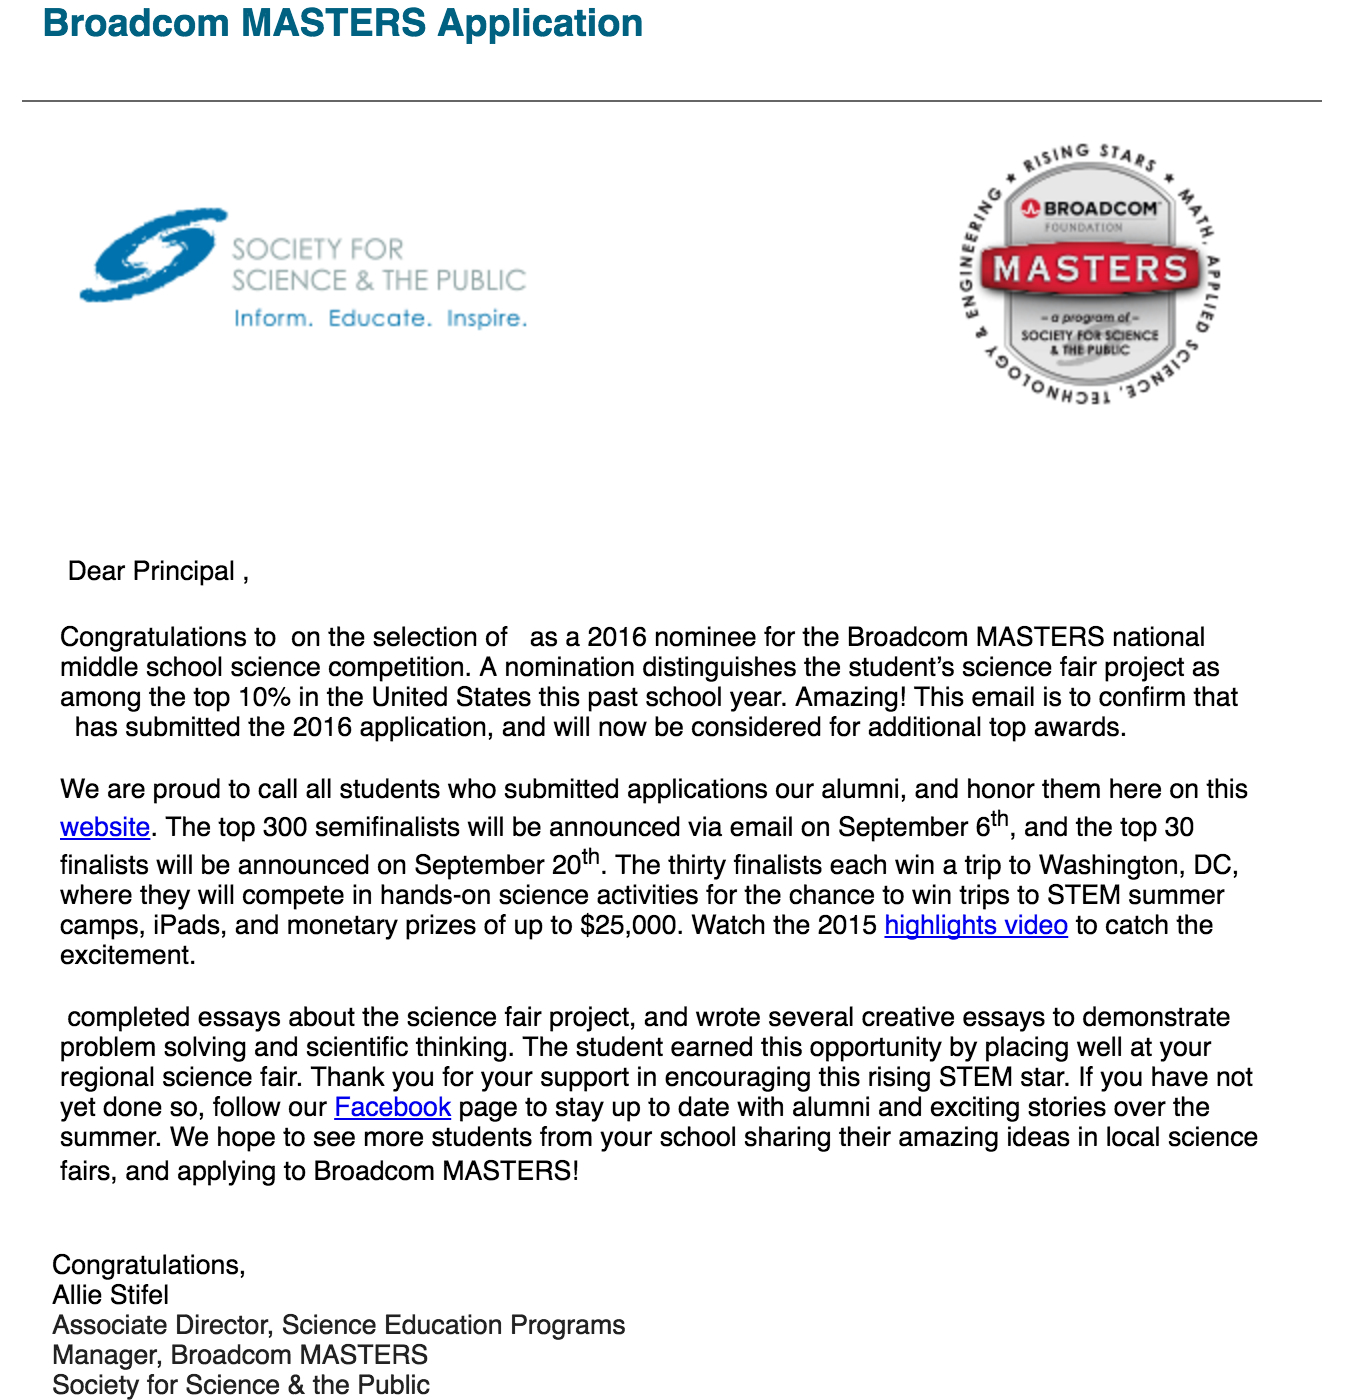 Broadcom MASTERS Application